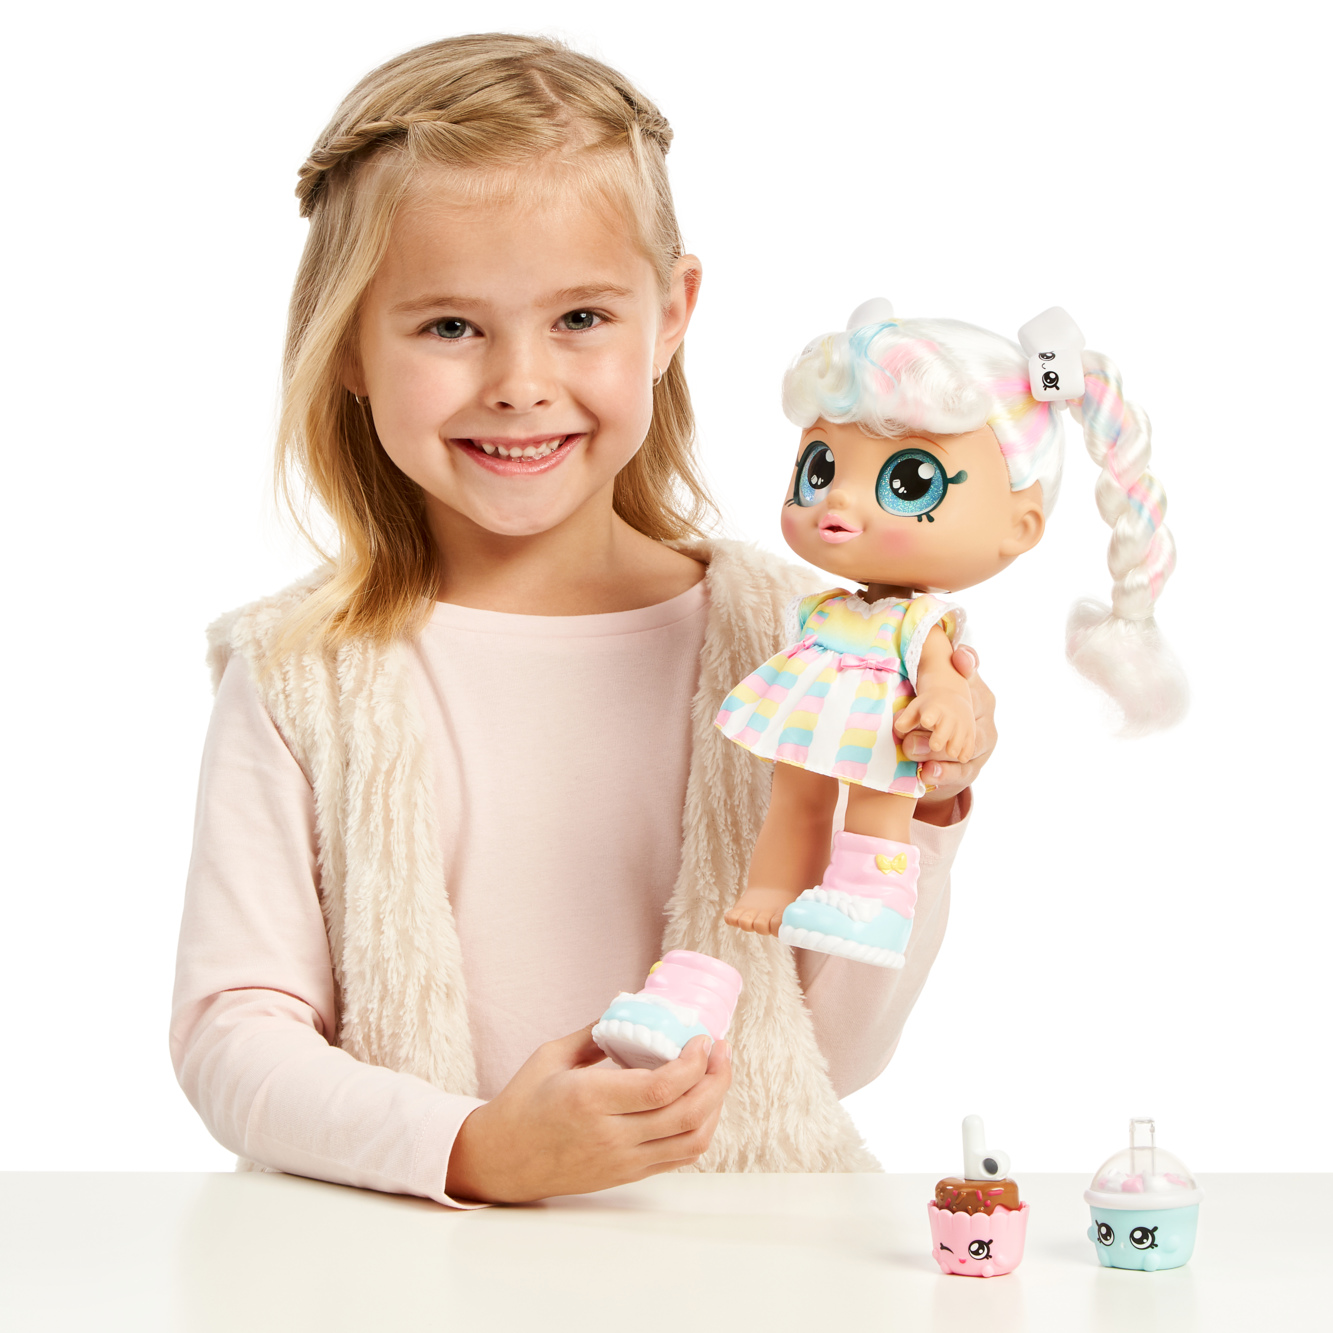 Top Selling Wholesale Toys for Girls Ages 3 Through 5